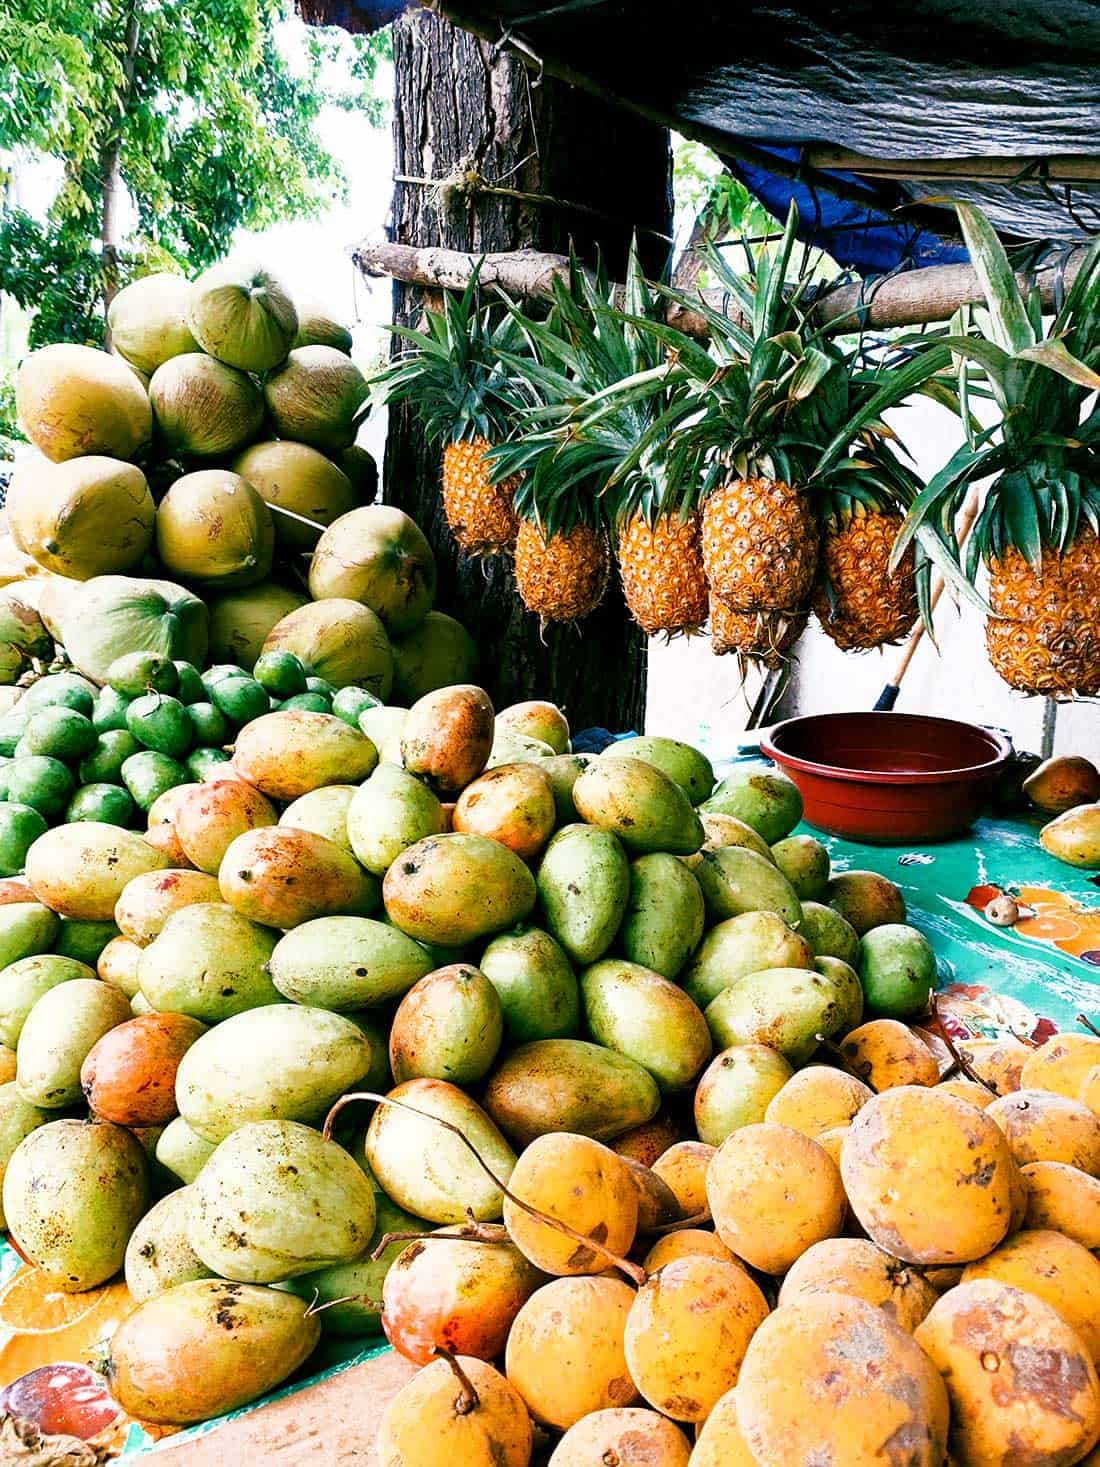 Tropical fruits ready for blending